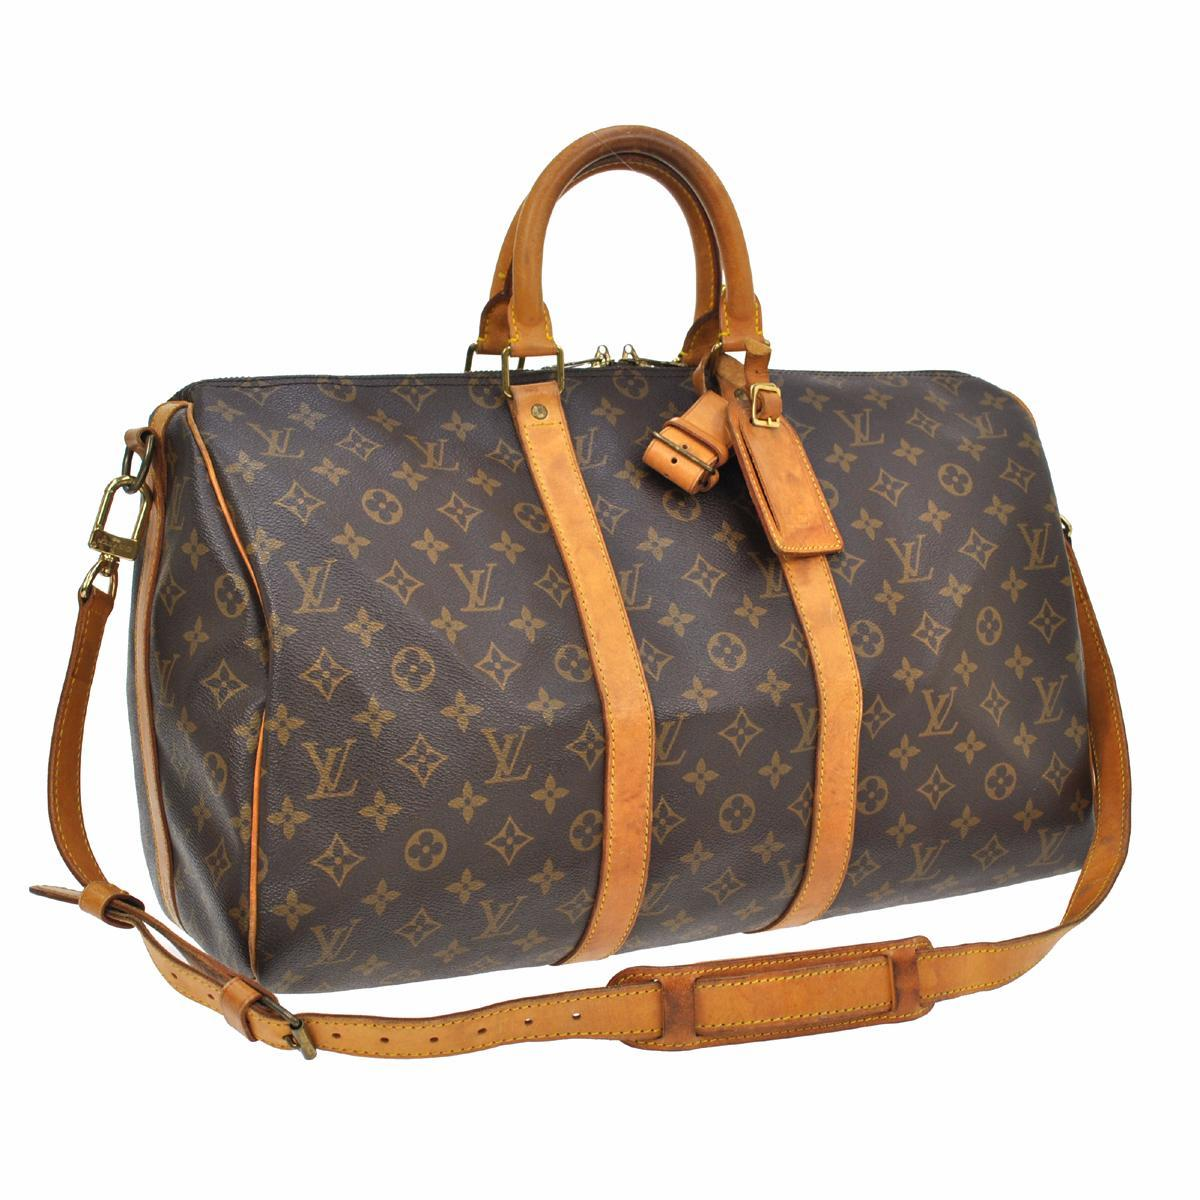 Louis Vuitton Keepall 45 Monogram Carry On Duffle Luggage M41428 ...